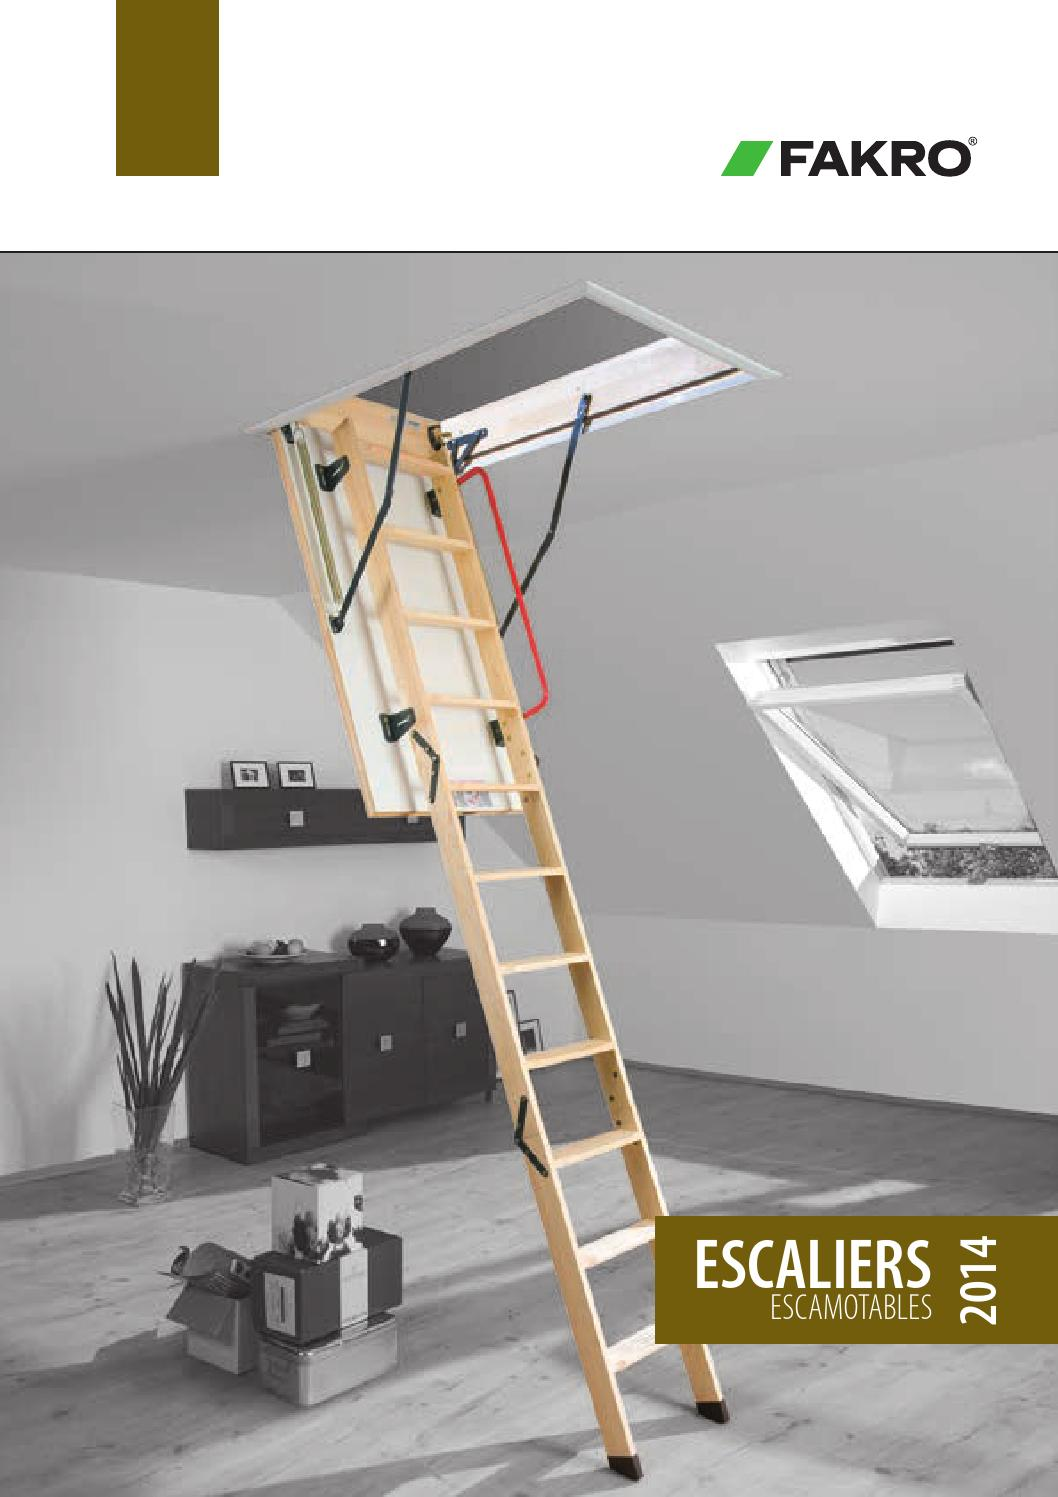 fr escaliers escamotables by fakro issuu. Black Bedroom Furniture Sets. Home Design Ideas